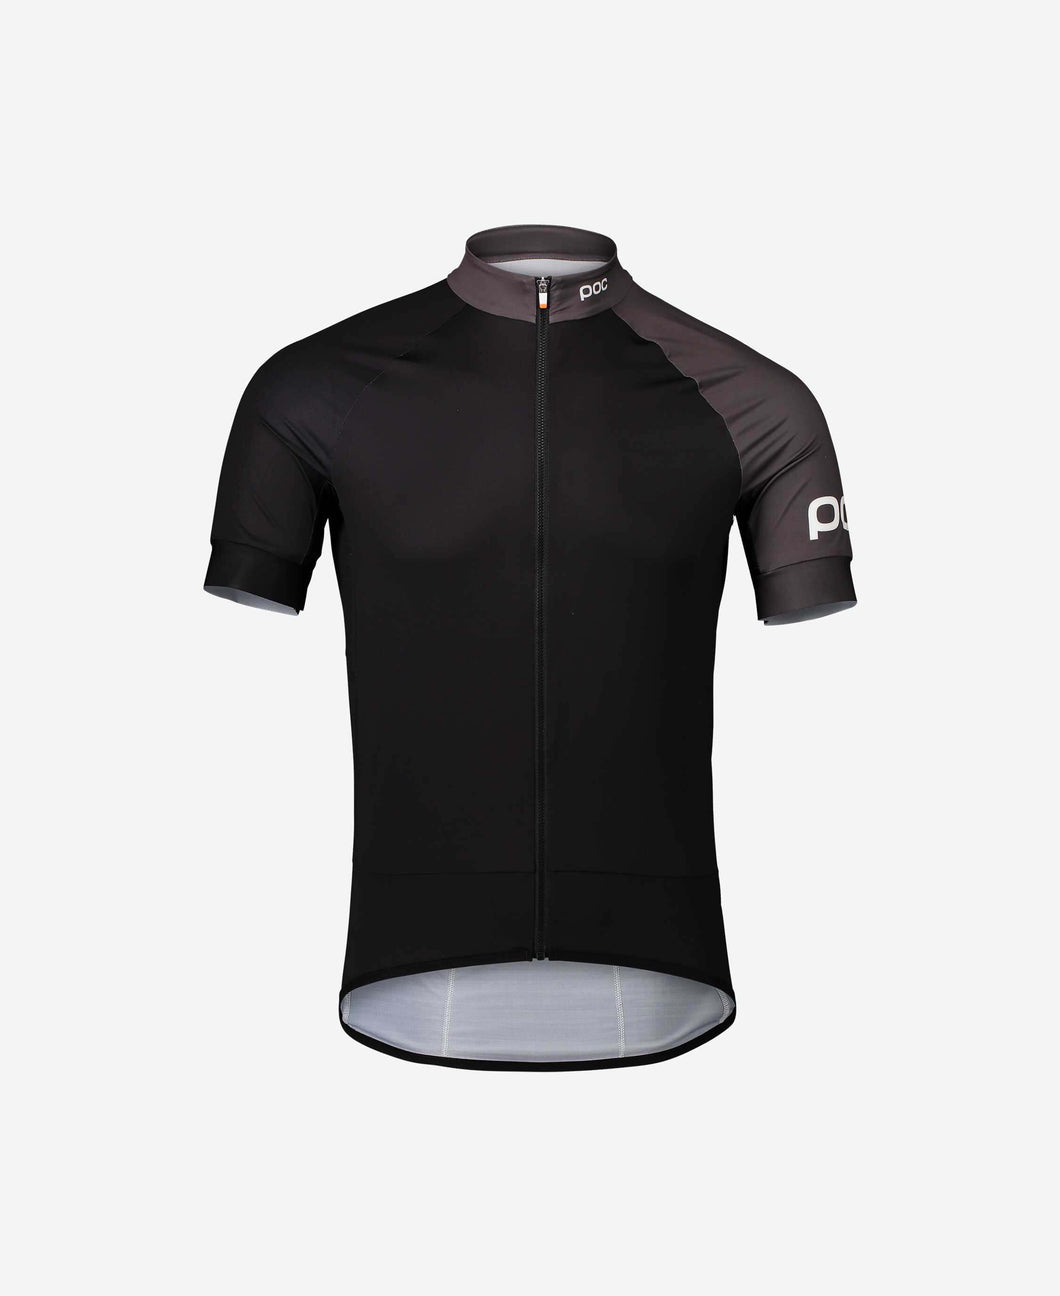 バイクジャージ Essential Road Jersey - Uranium Black/Sylvanite Grey [ユニセックス] 58211-8288 - STYLE BIKE ONLINE SHOP